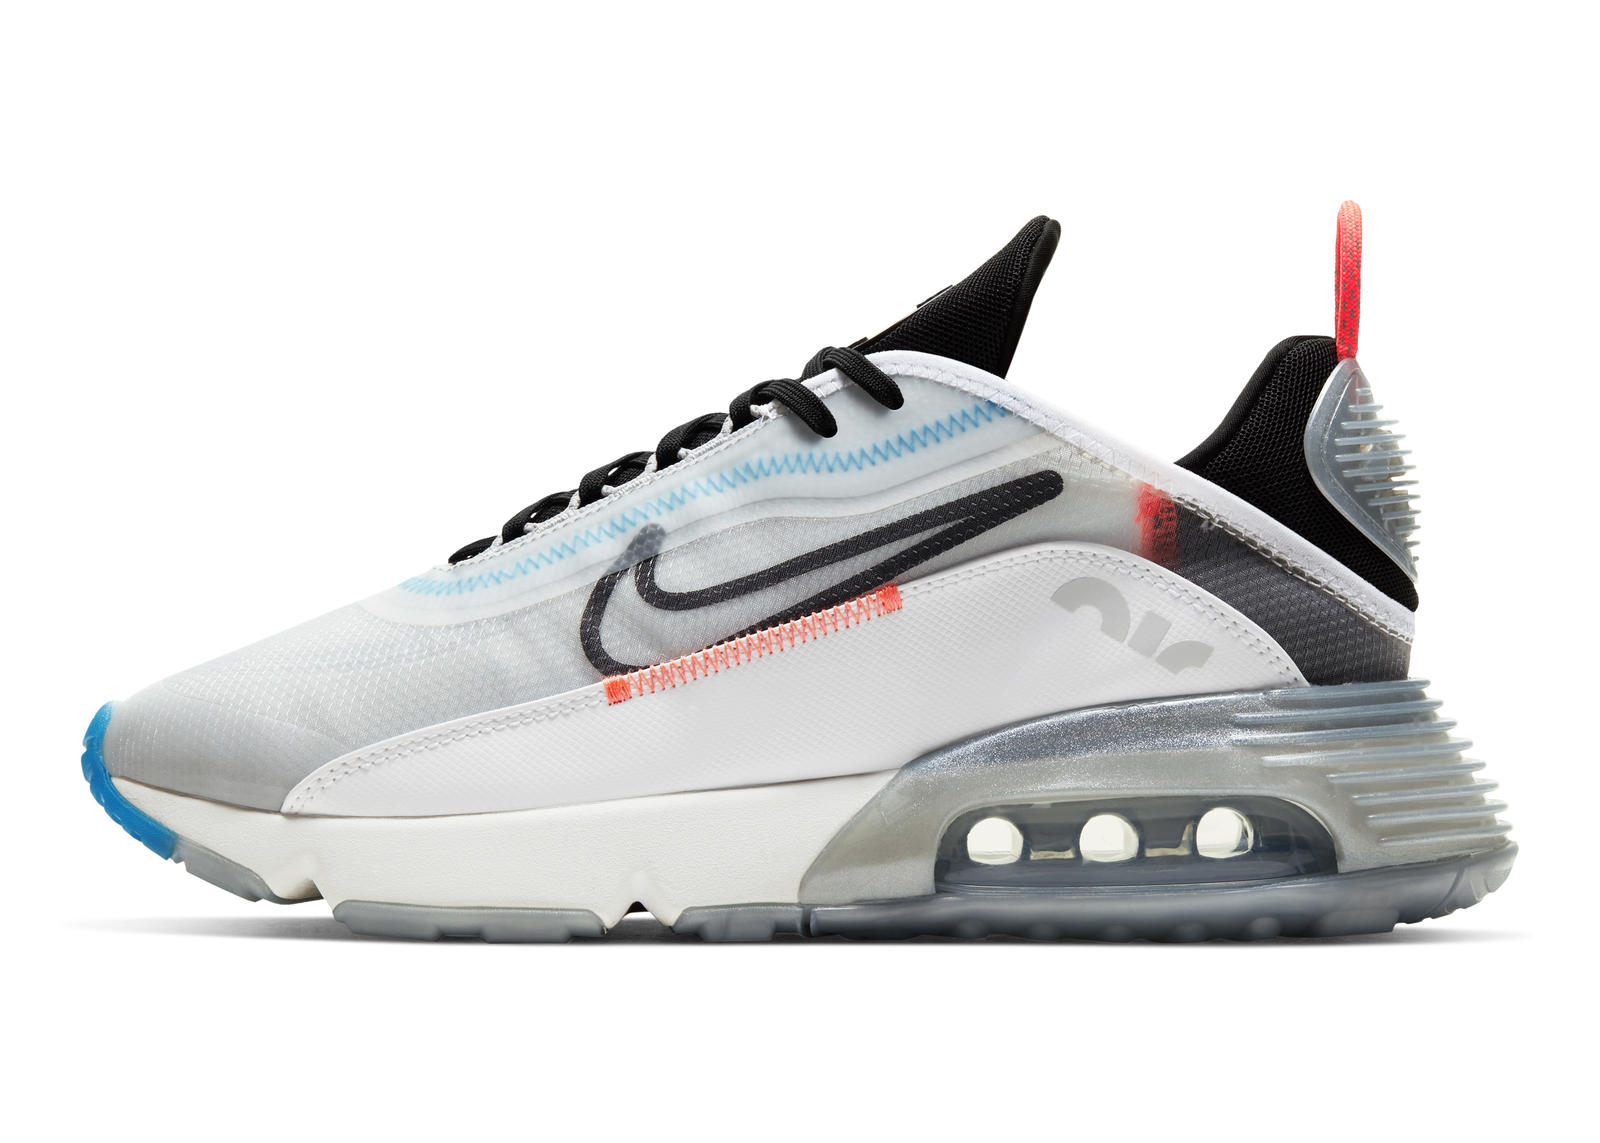 nike, air max day, air max 2090, sneakers, 2020